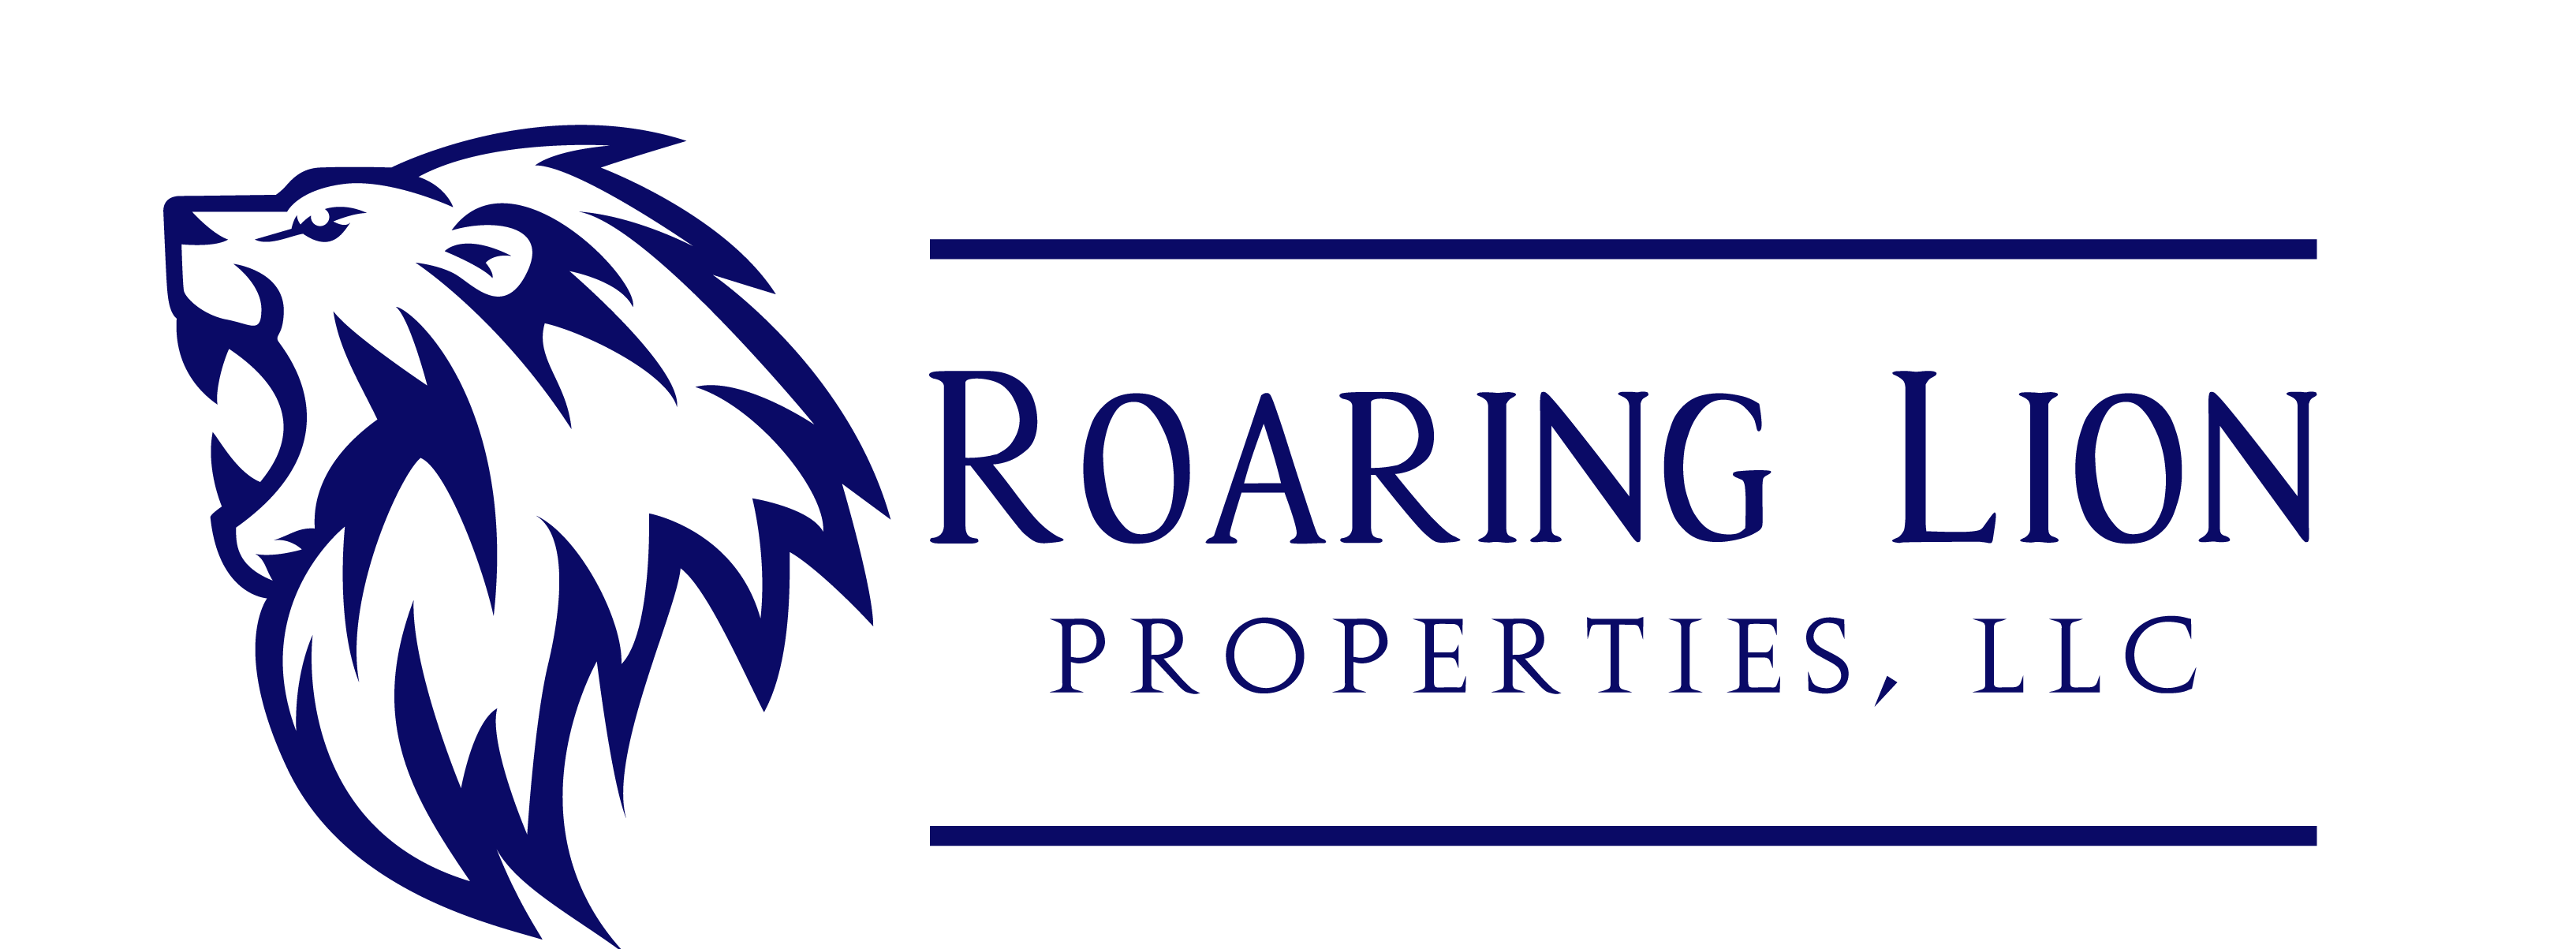 Roaring Lion Properties, LLC